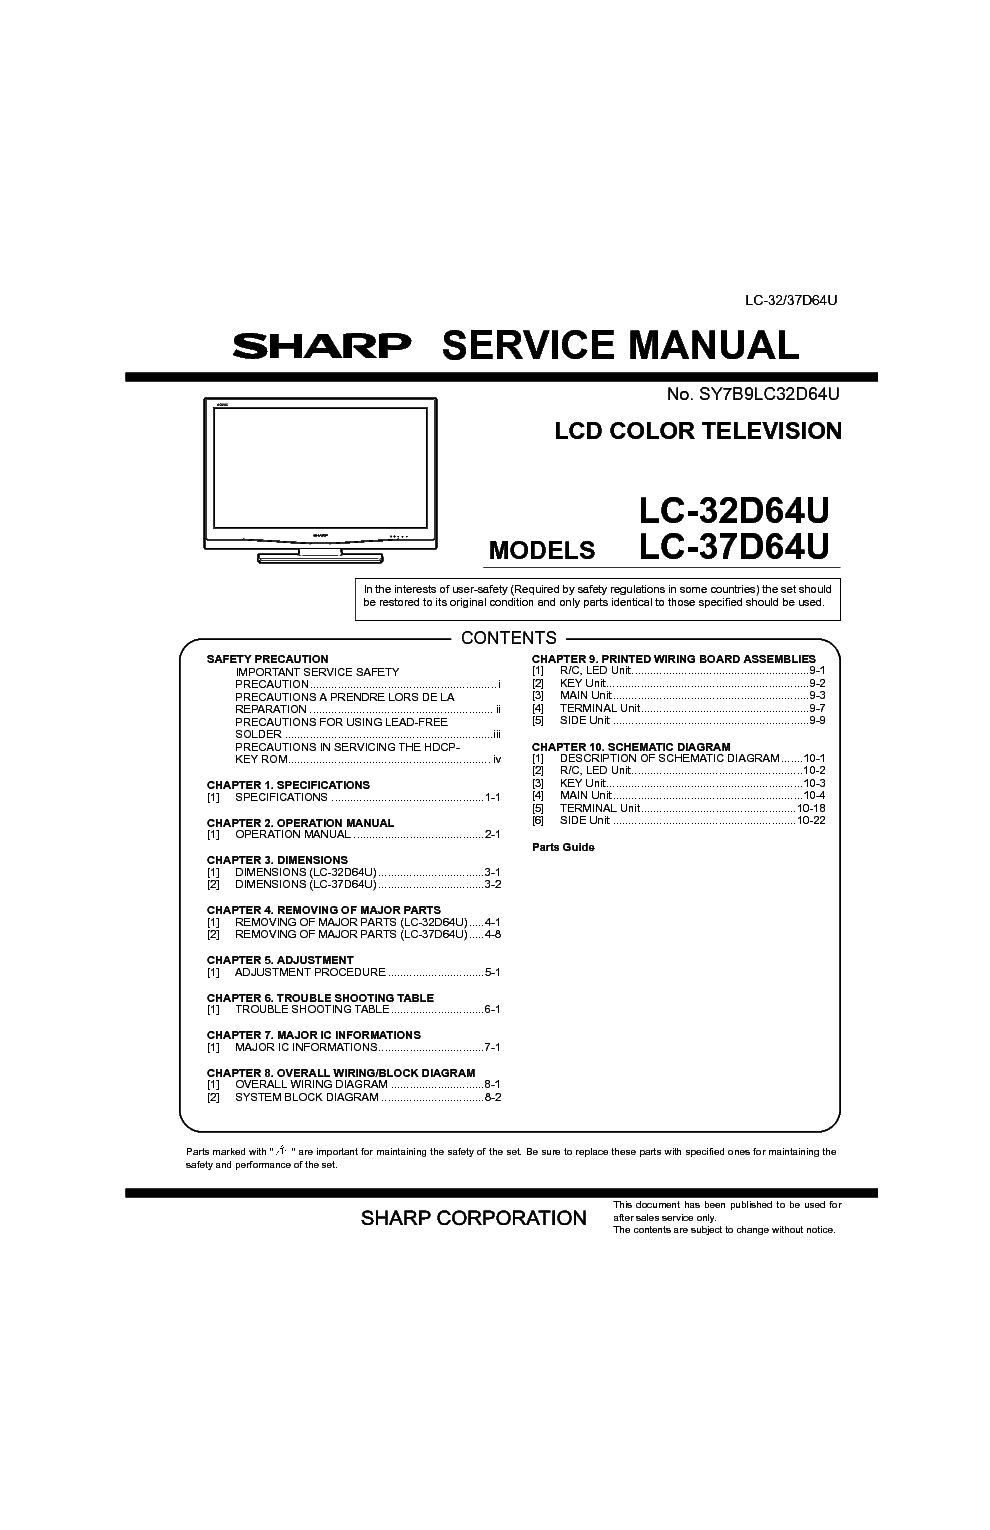 sharp lc32d64u sm service manual download schematics eeprom rh elektrotanya com sharp lc-32d64u manual sharp aquos lc-32d64u manual